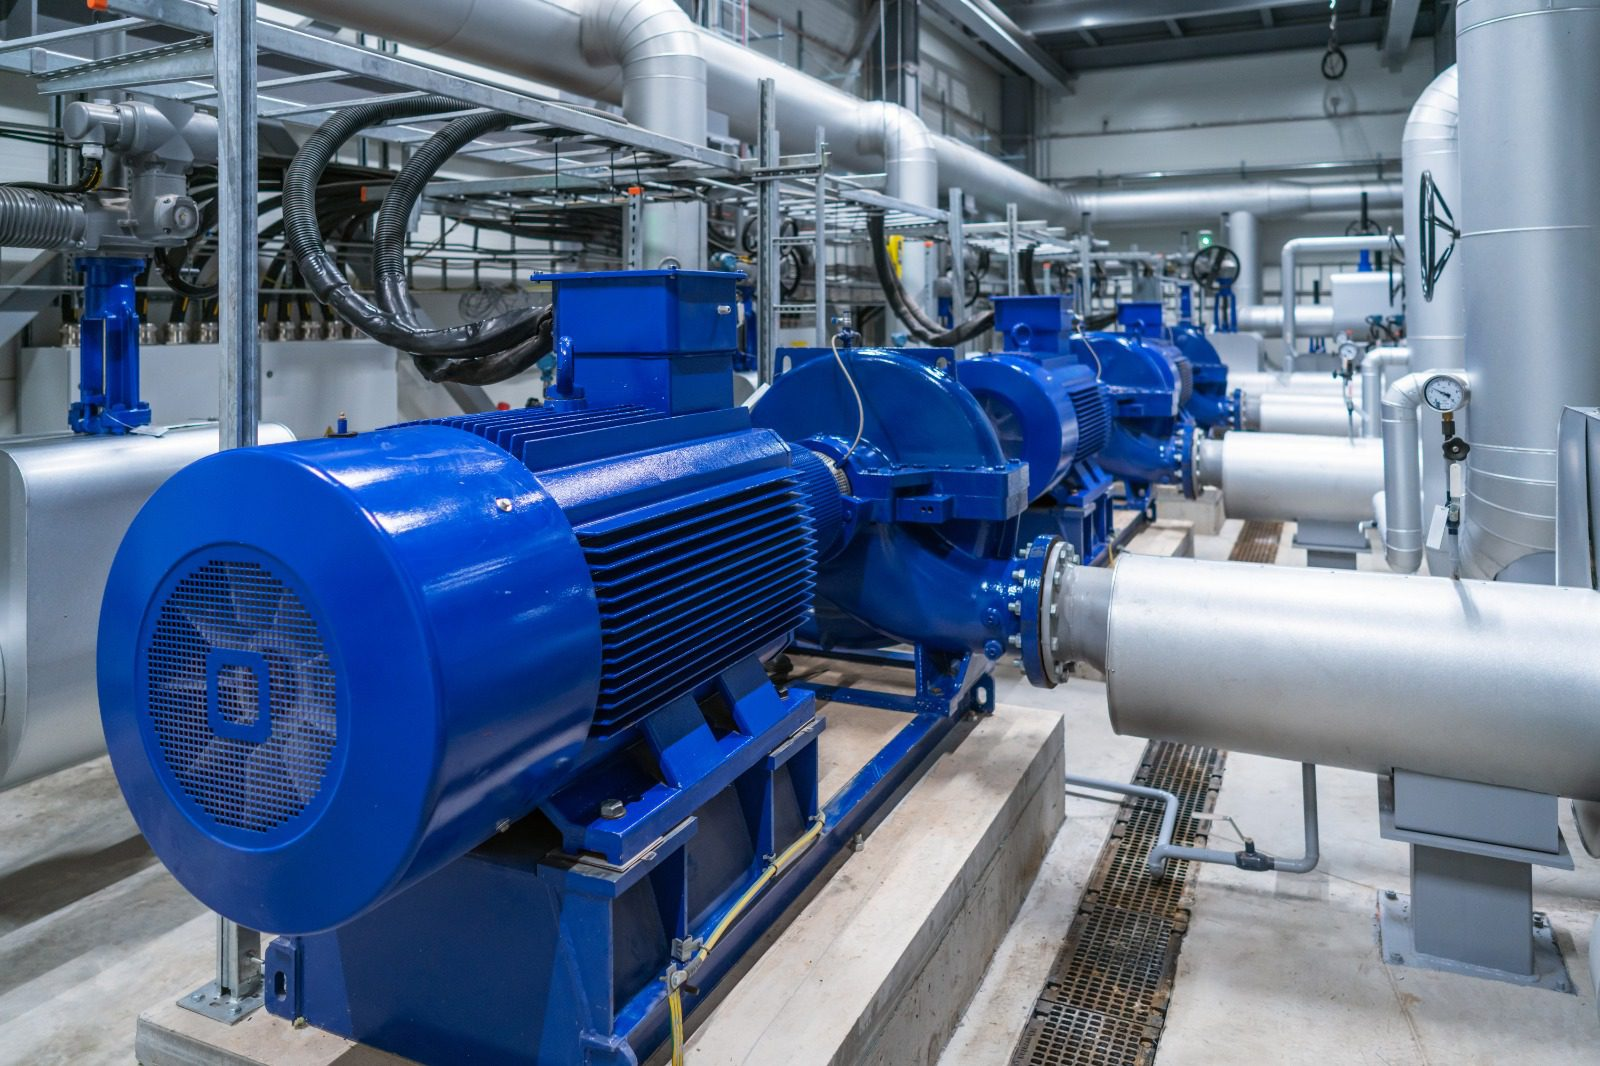 Even small efficiency increases in electric motors contribute significantly to operational efficiency.